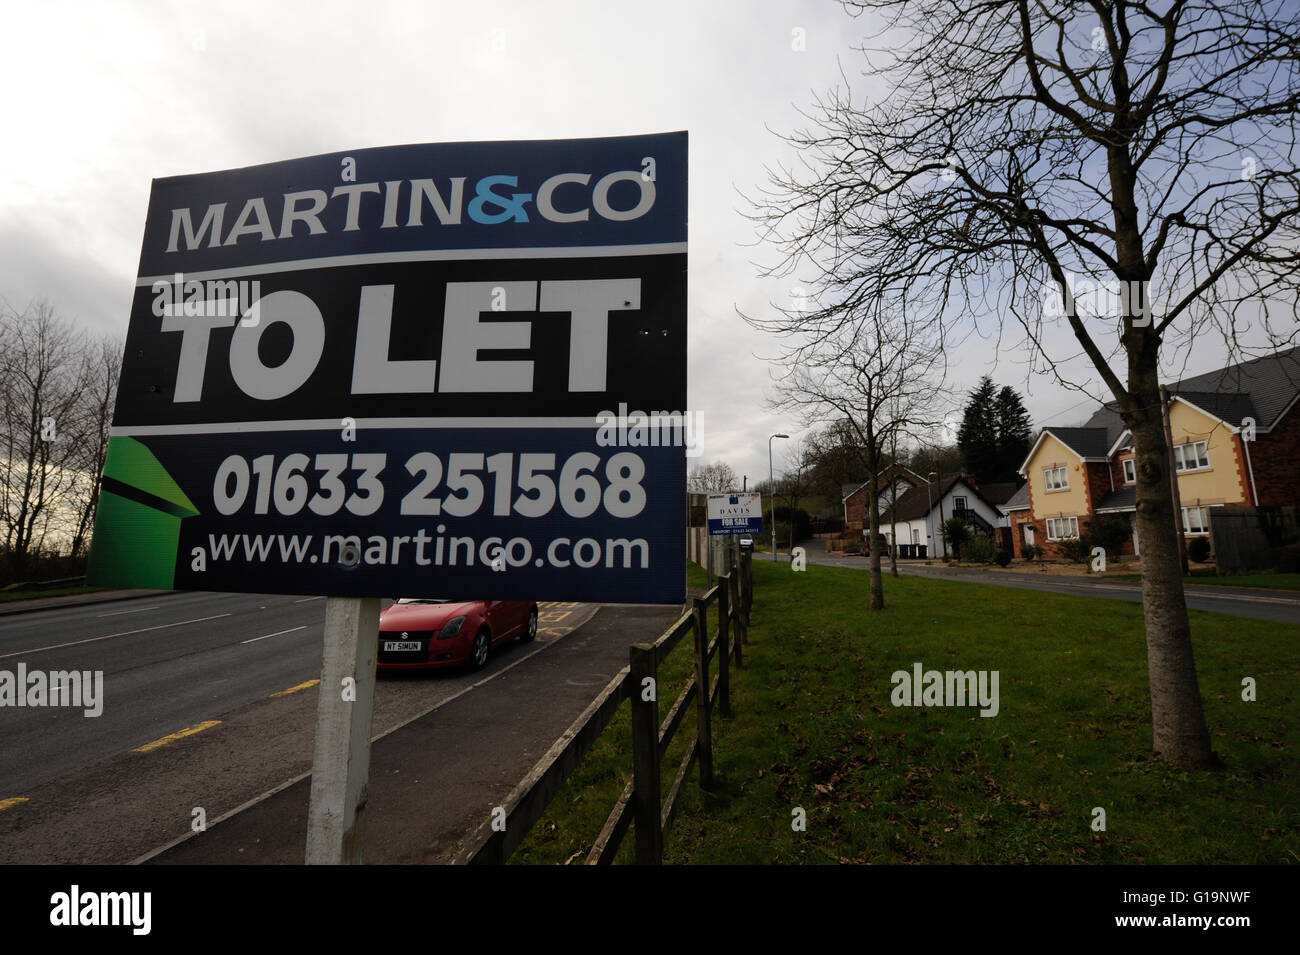 Real Estate agency,UK, To Let - Stock Image